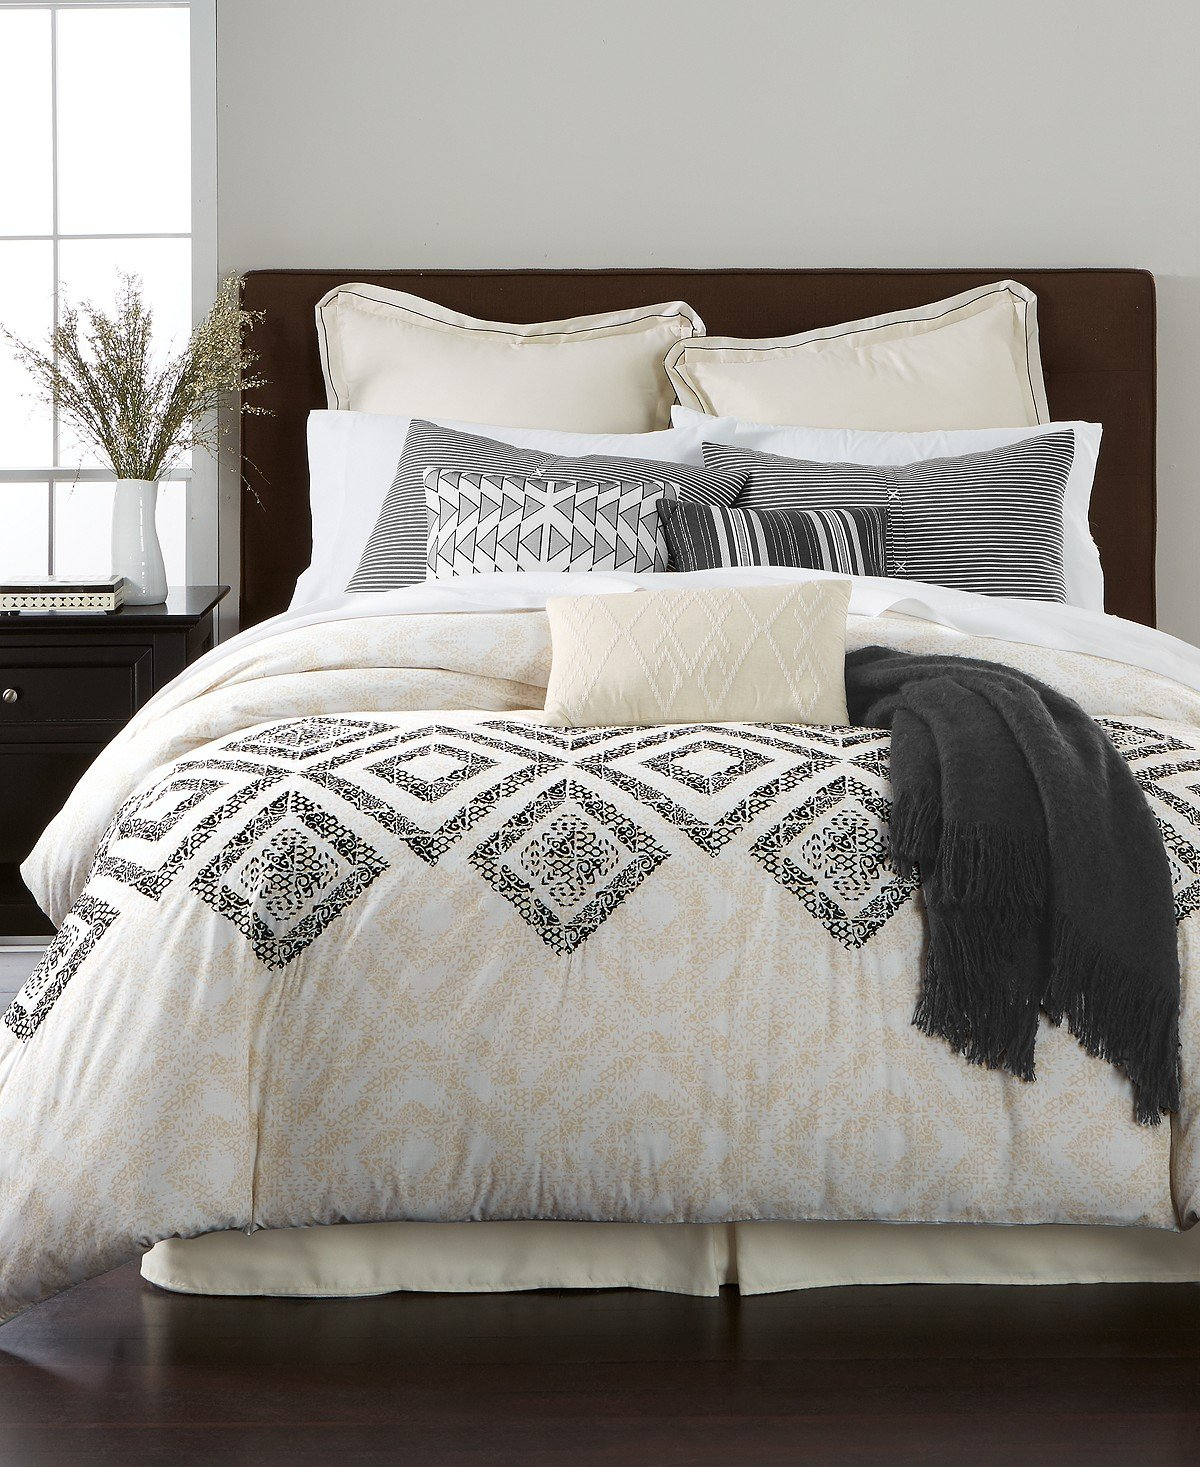 34e3734707 Amazon.com: Martha Stewart Rough Diamond 10-Piece QUEEN Comforter Set White  Black: Home & Kitchen